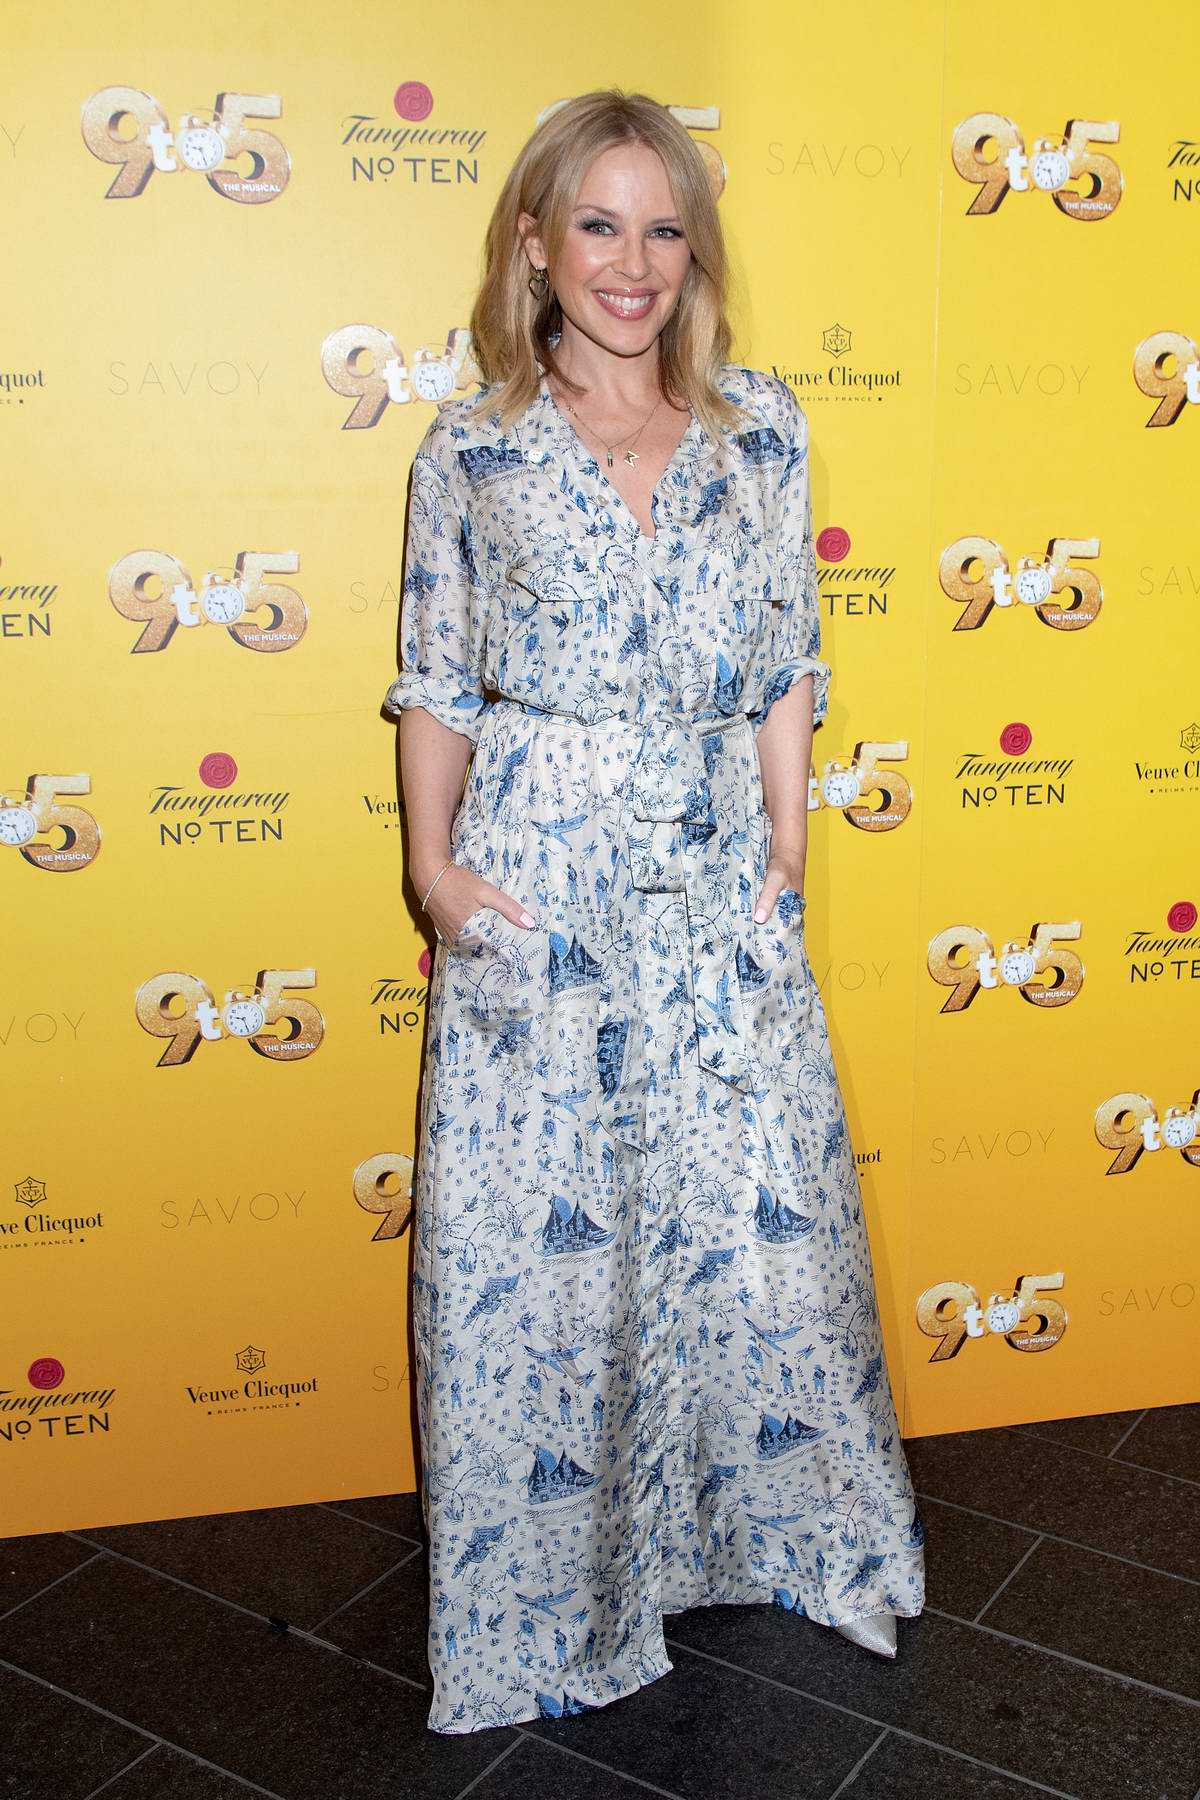 Kylie Minogue attends Dolly Parton's '9 to 5' The Musical Gala Evening at The Savoy Theatre in London, UK